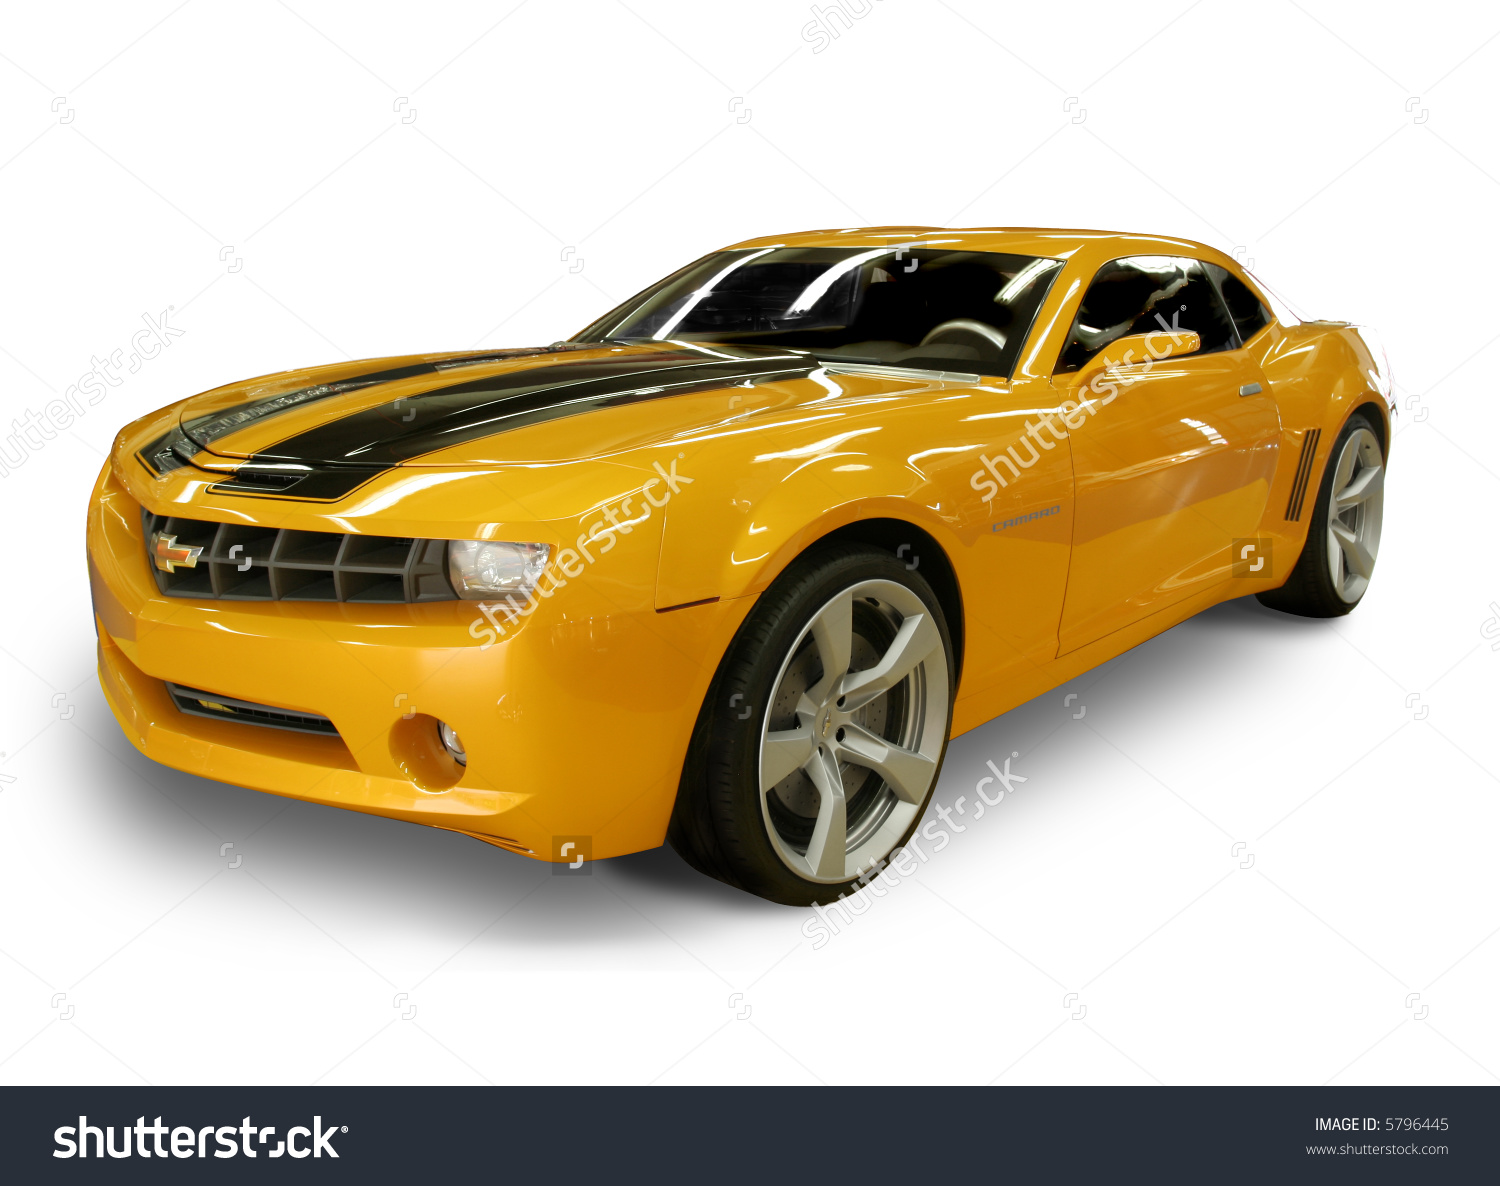 Transformers bumblebee car clipart.